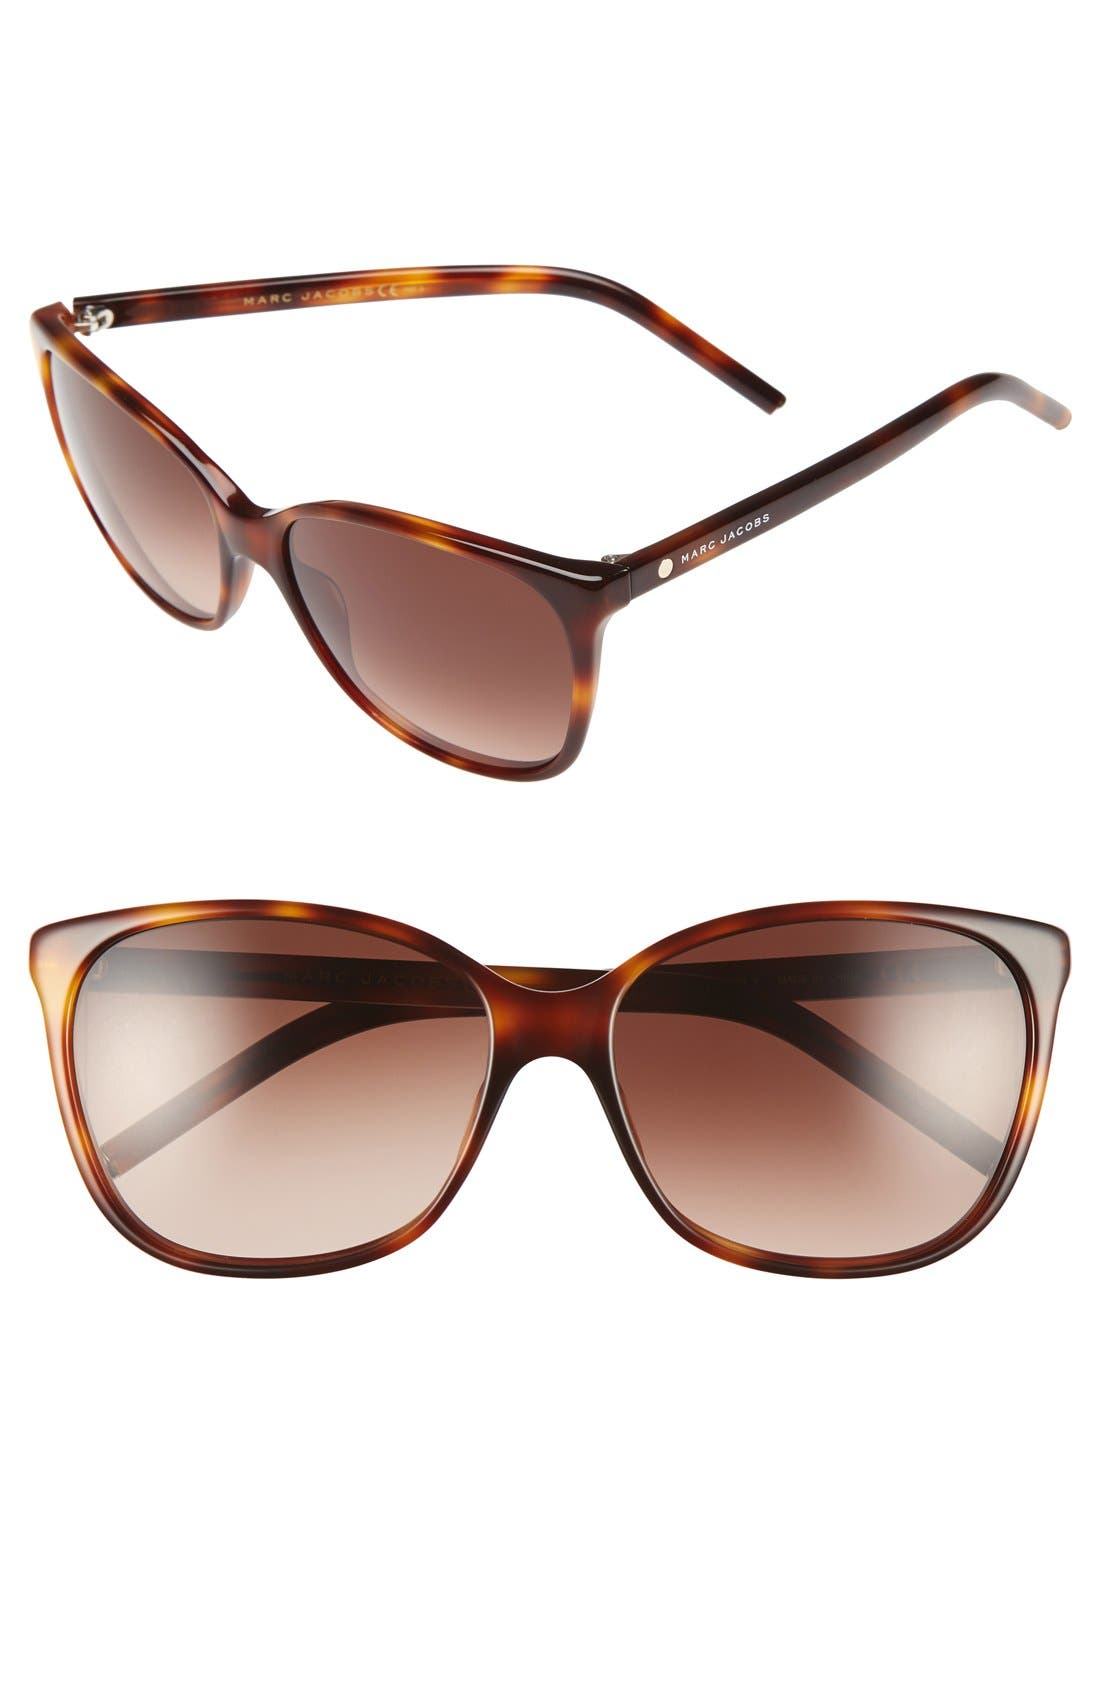 57mm Oversized Sunglasses,                         Main,                         color, 210